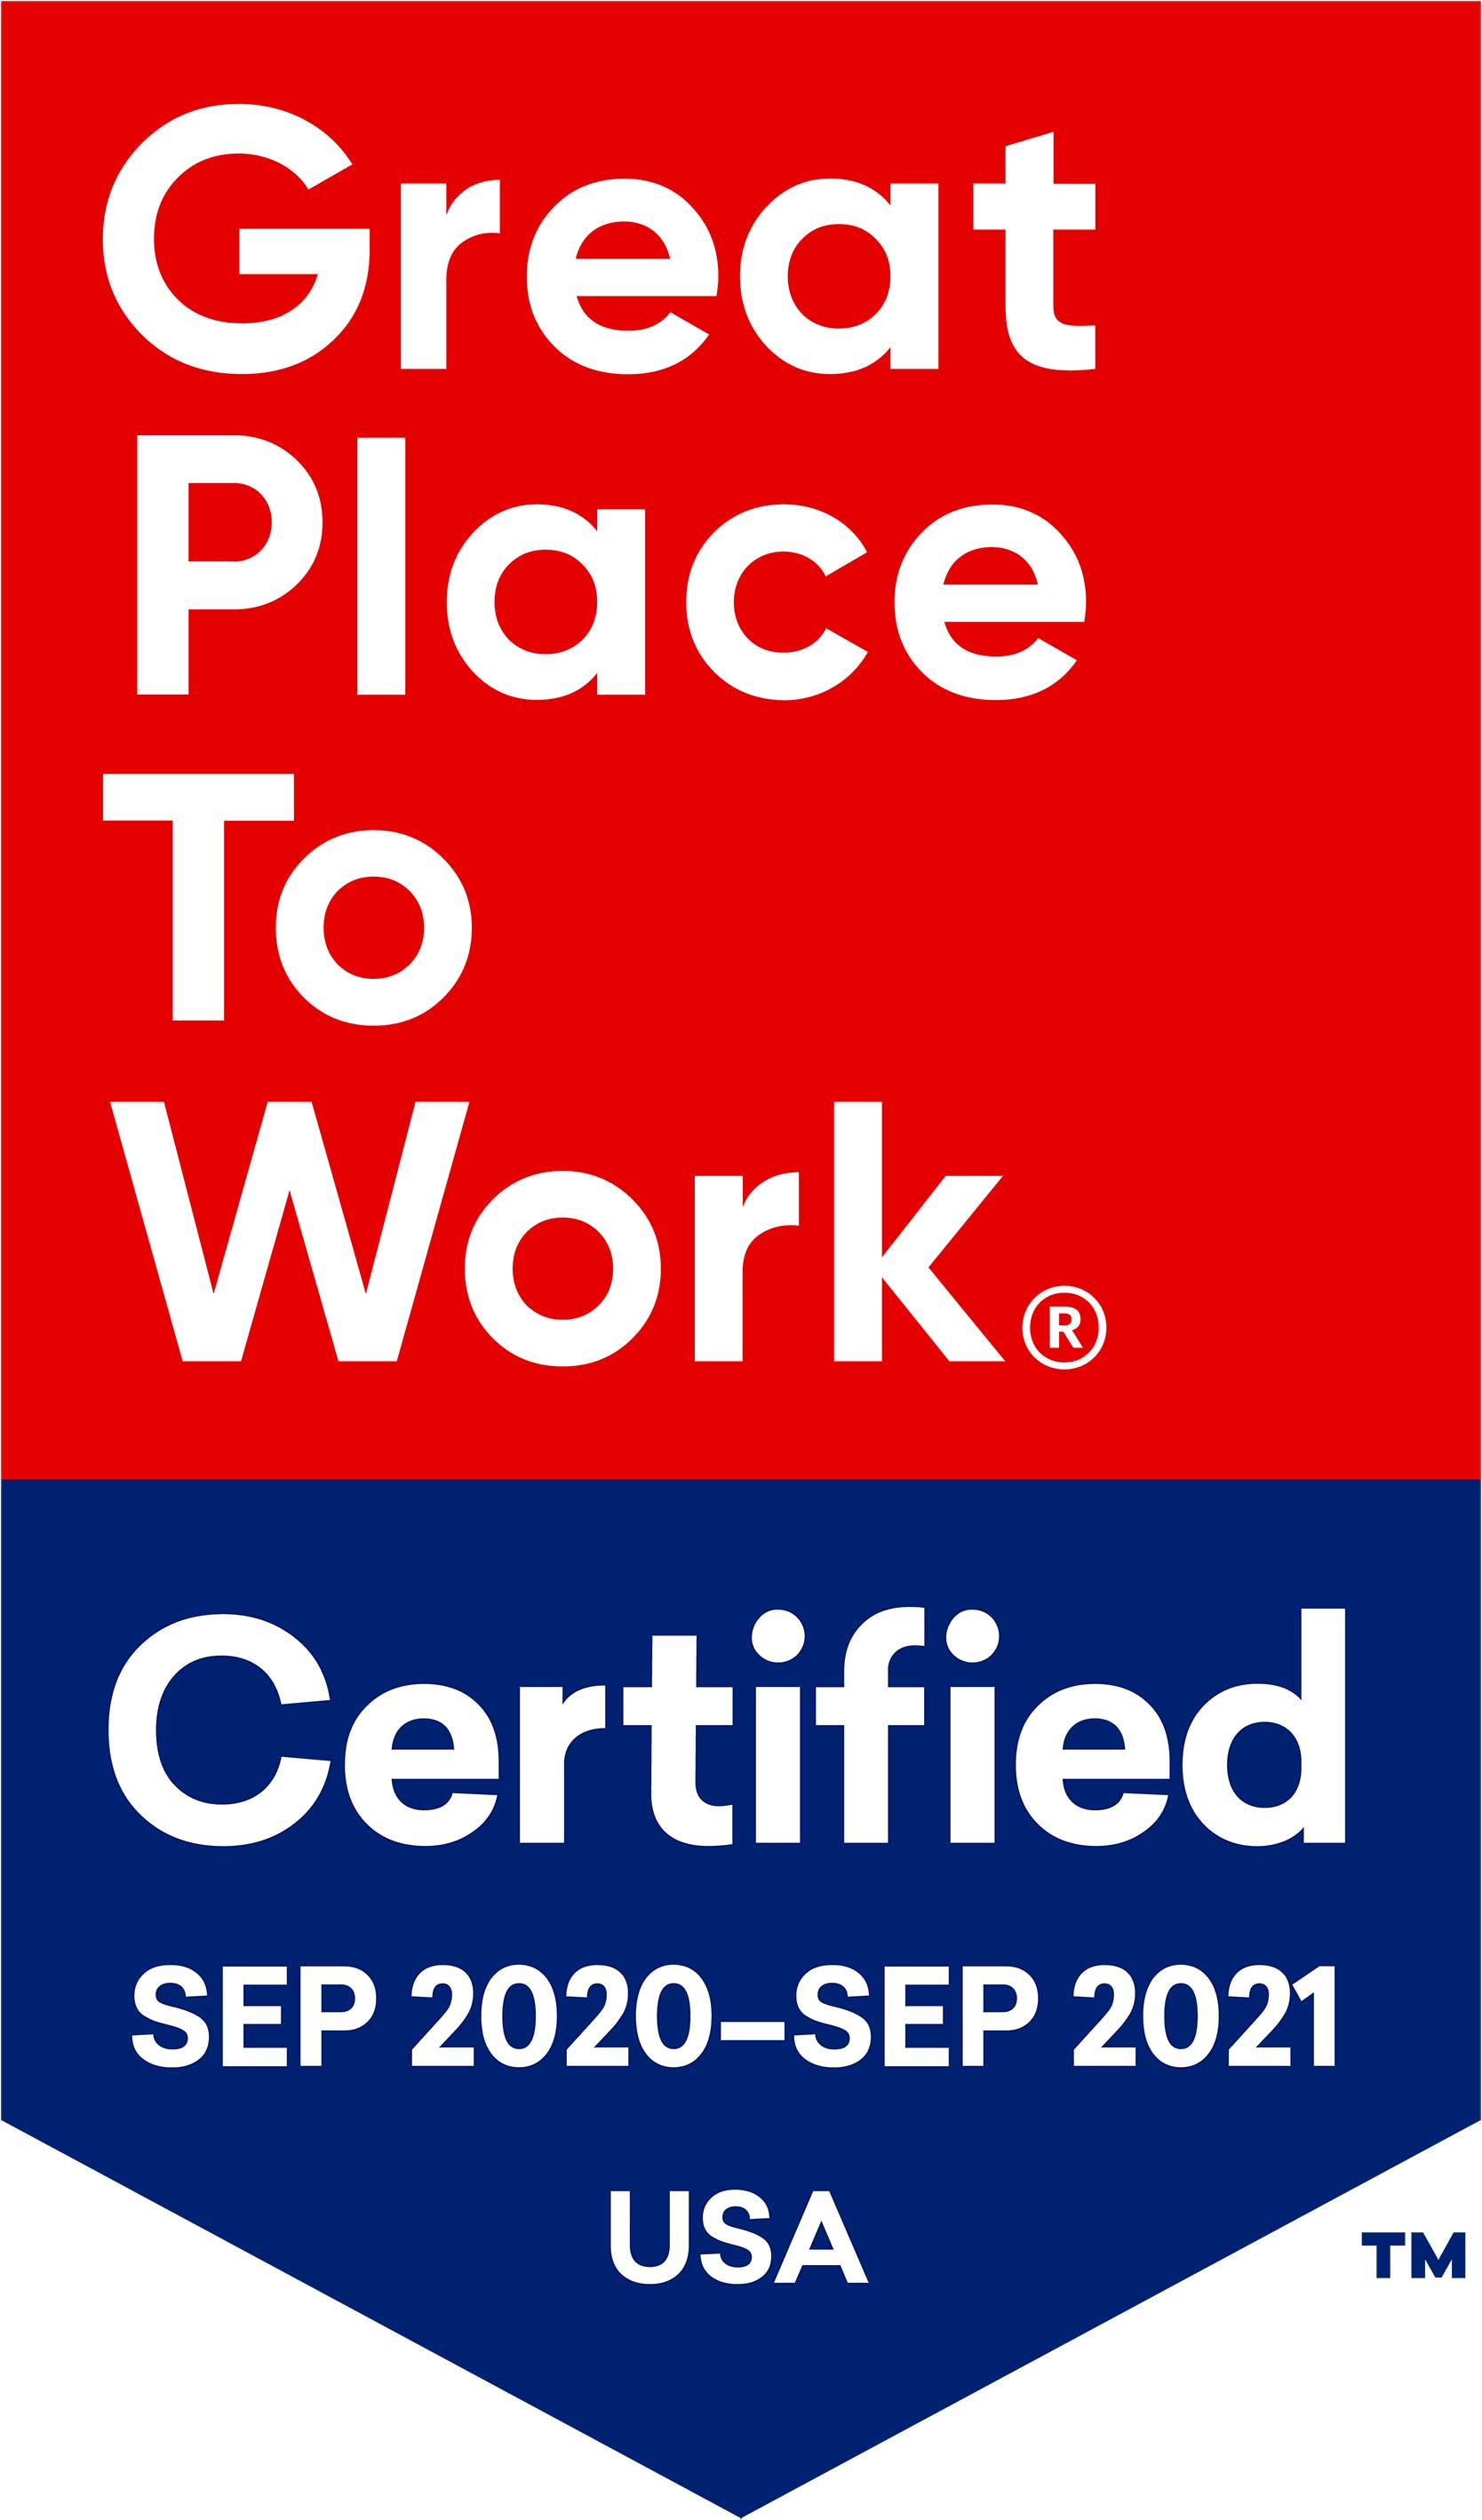 Great Place to Work. Certified September 2019 to September 202. USA.